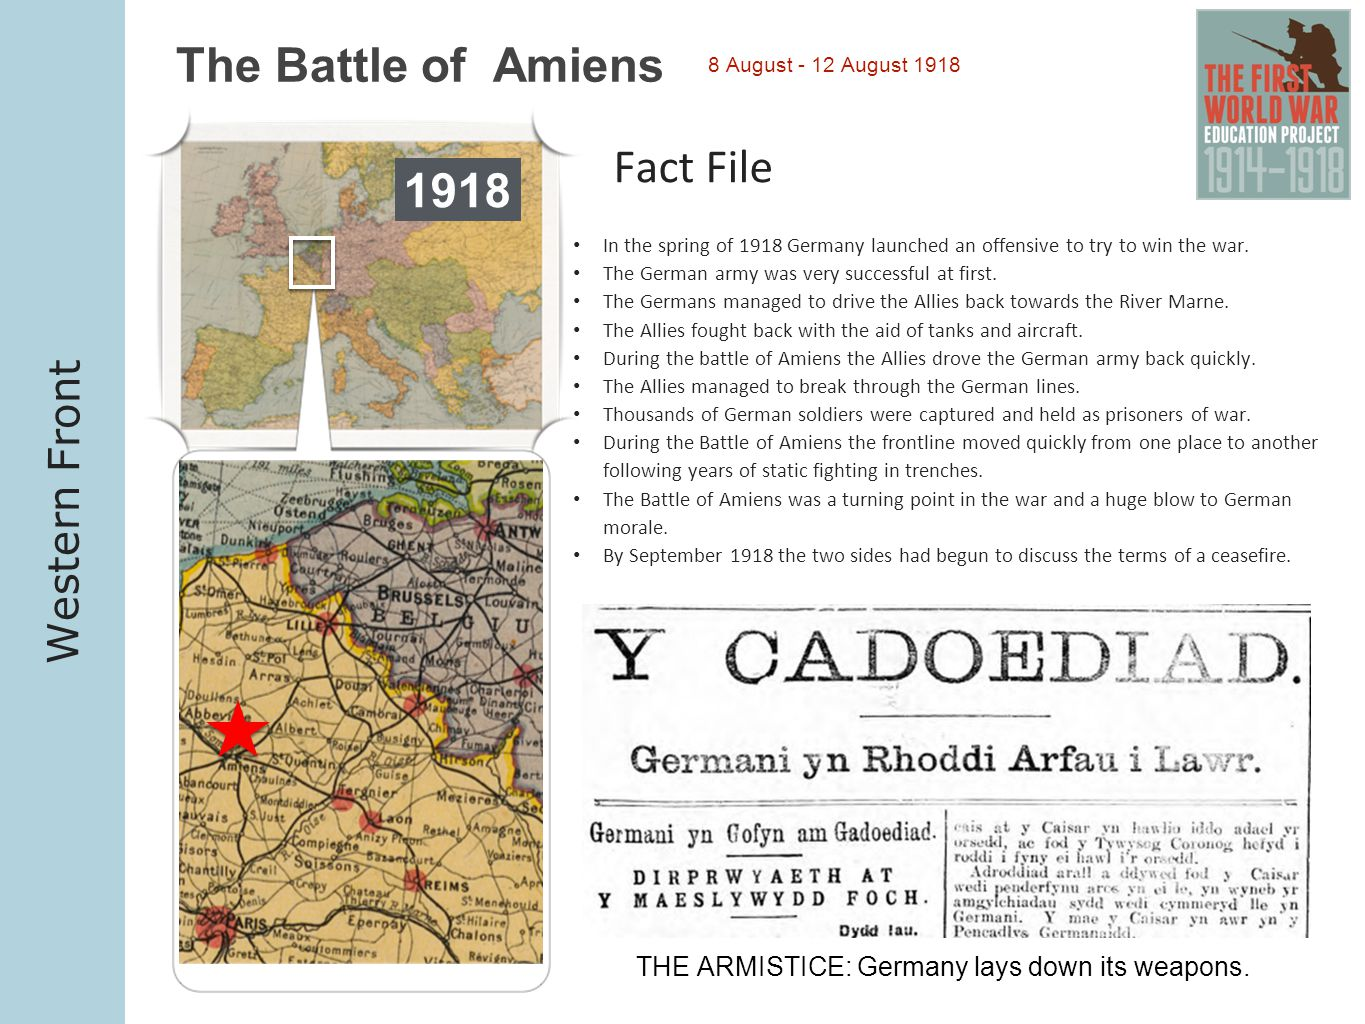 THE ARMISTICE: Germany lays down its weapons.